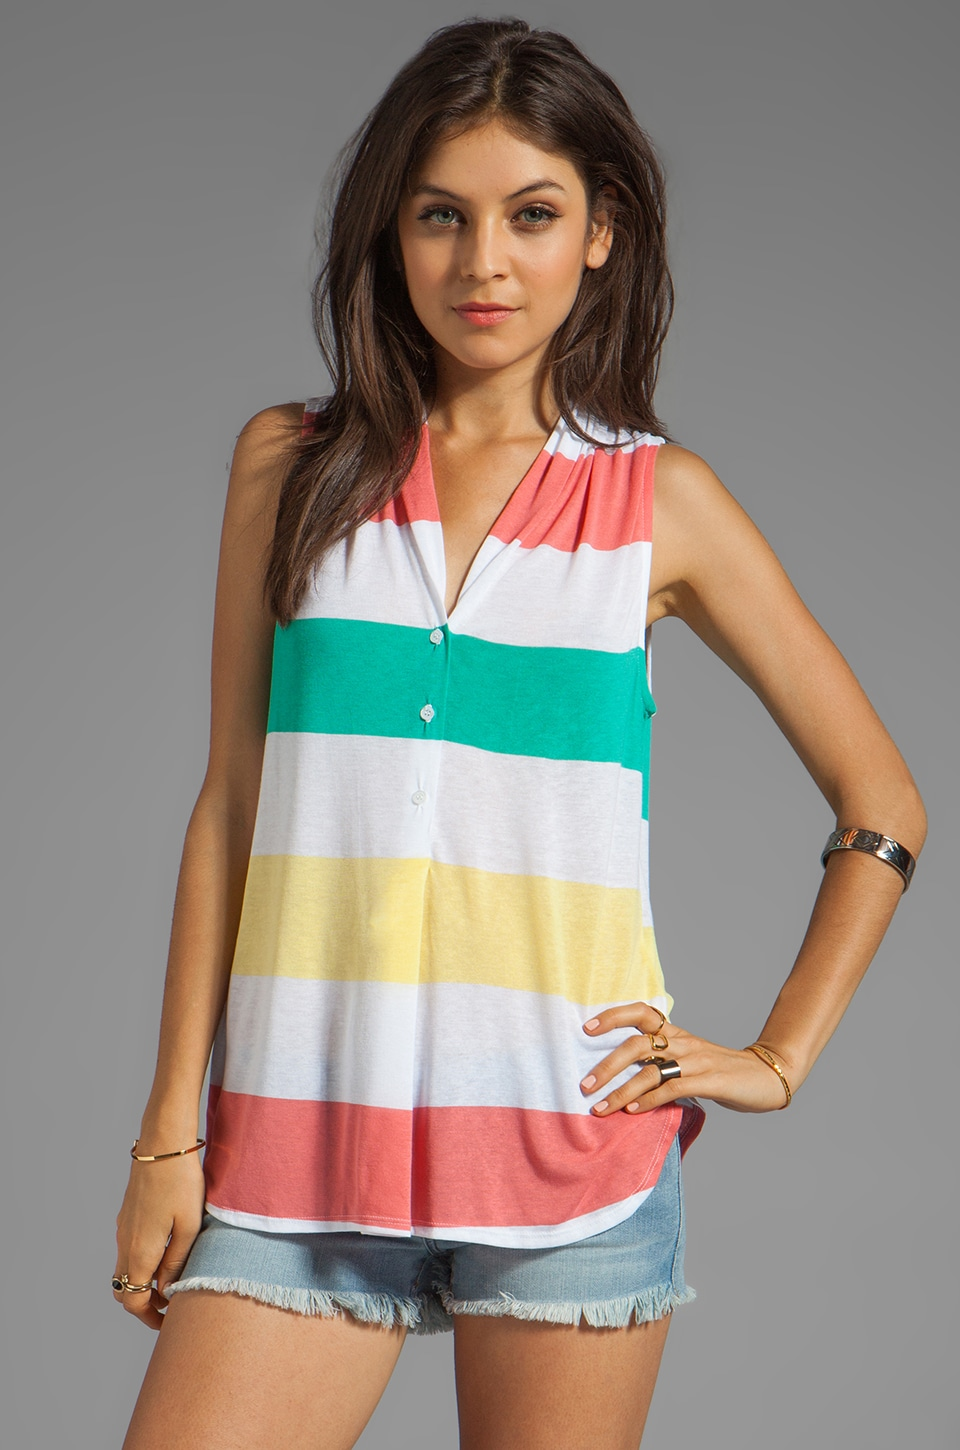 Ella Moss Aloha Stripe Top in Coral